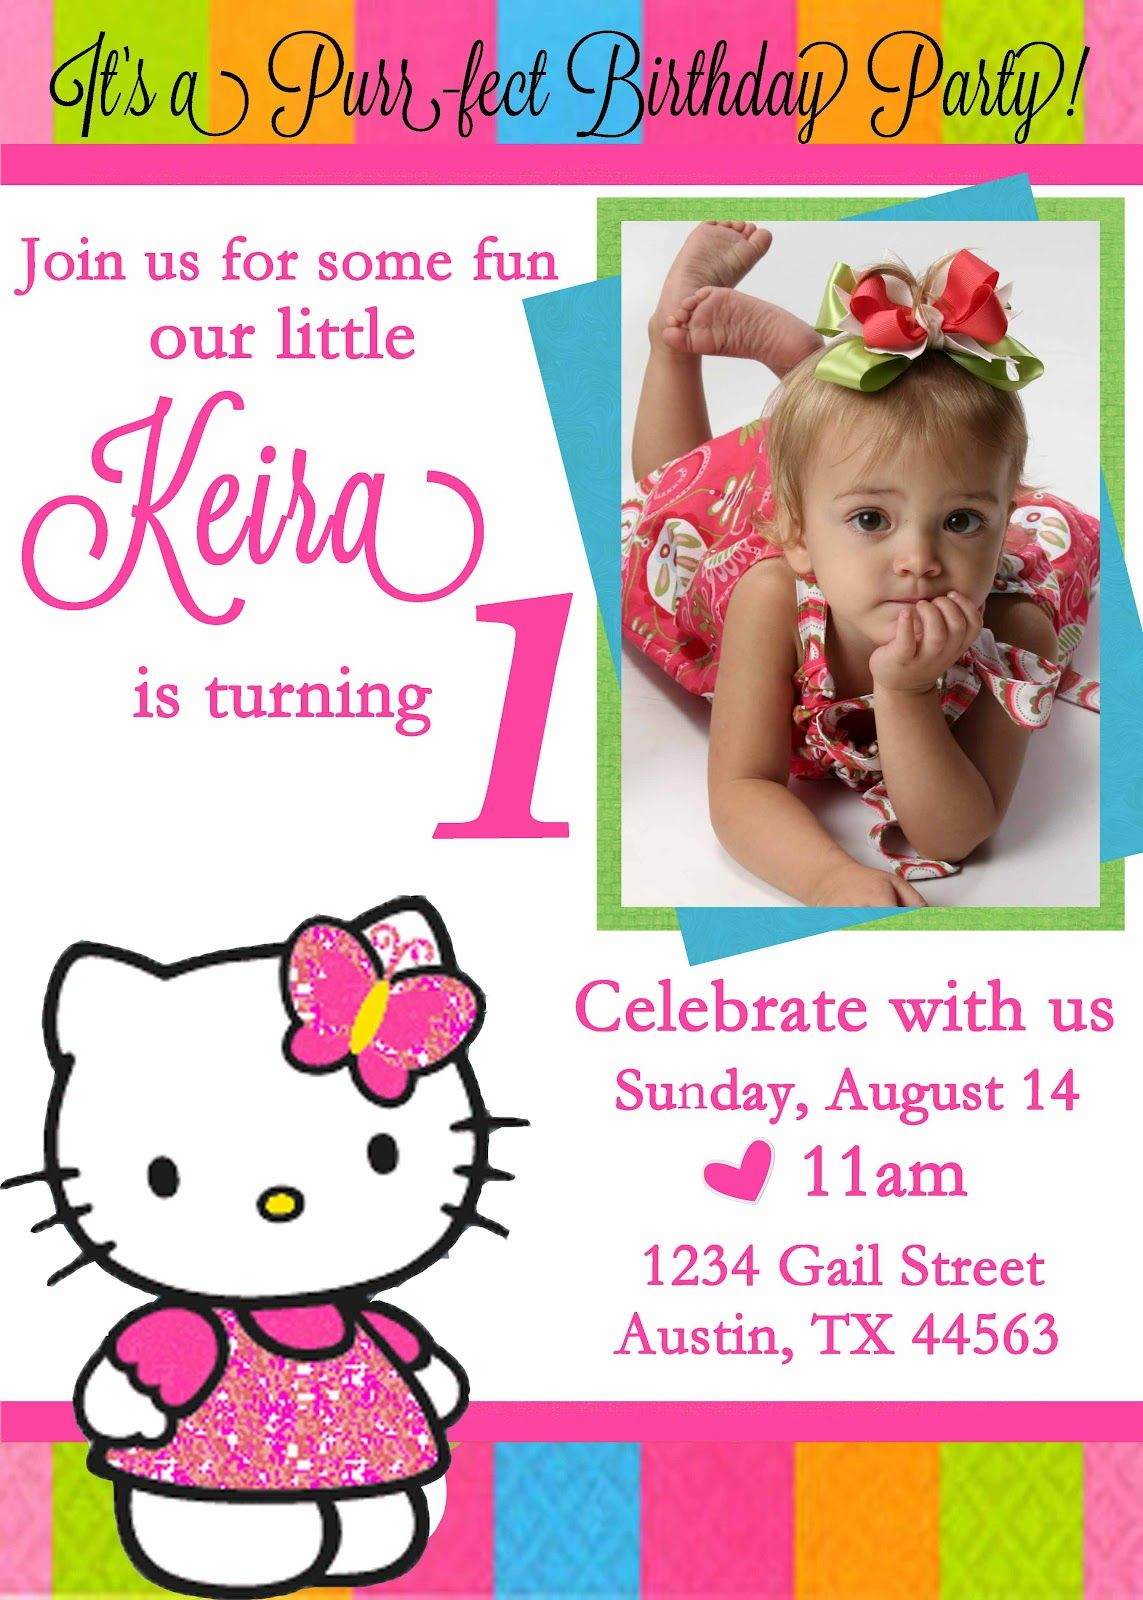 What  Come And Join My 1st Birthday Party When  Monday, October 03